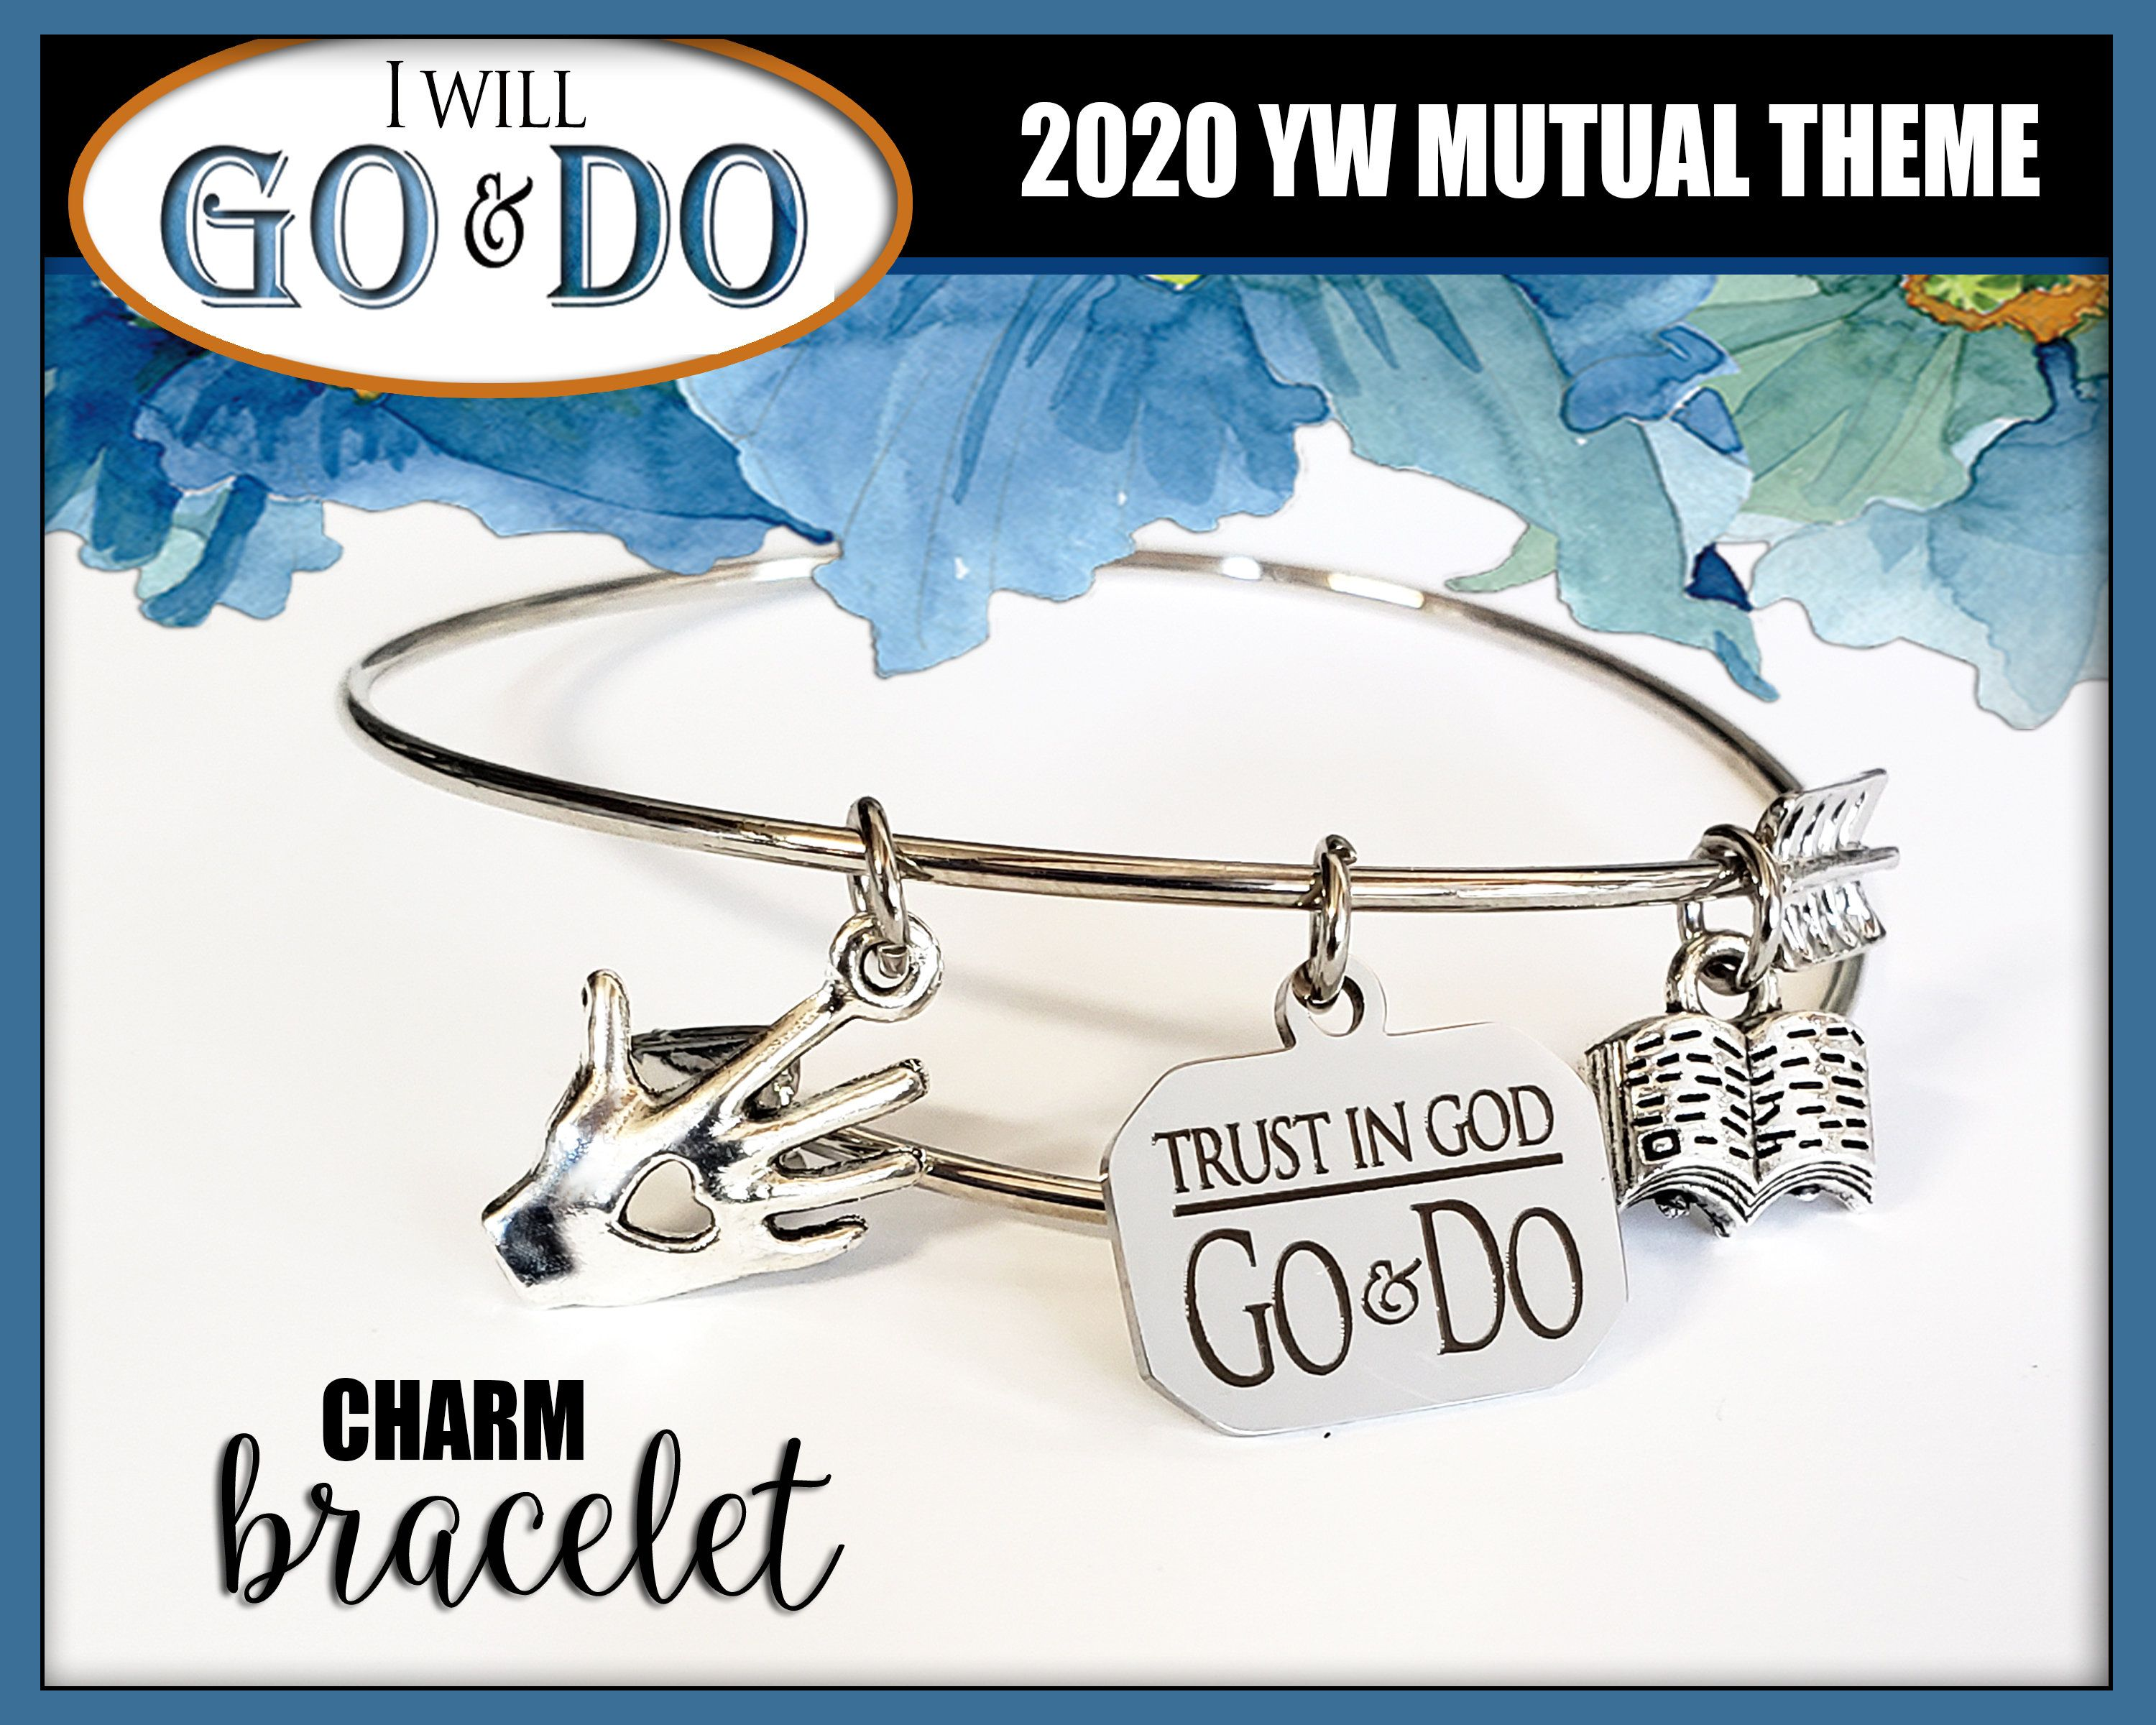 WHOLESALE Charm Bracelet YW 2019 Love /& Obedience Young Women LDS Mutual Theme Jewelry TurquoisE New Beginnings Christmas Birthday gift